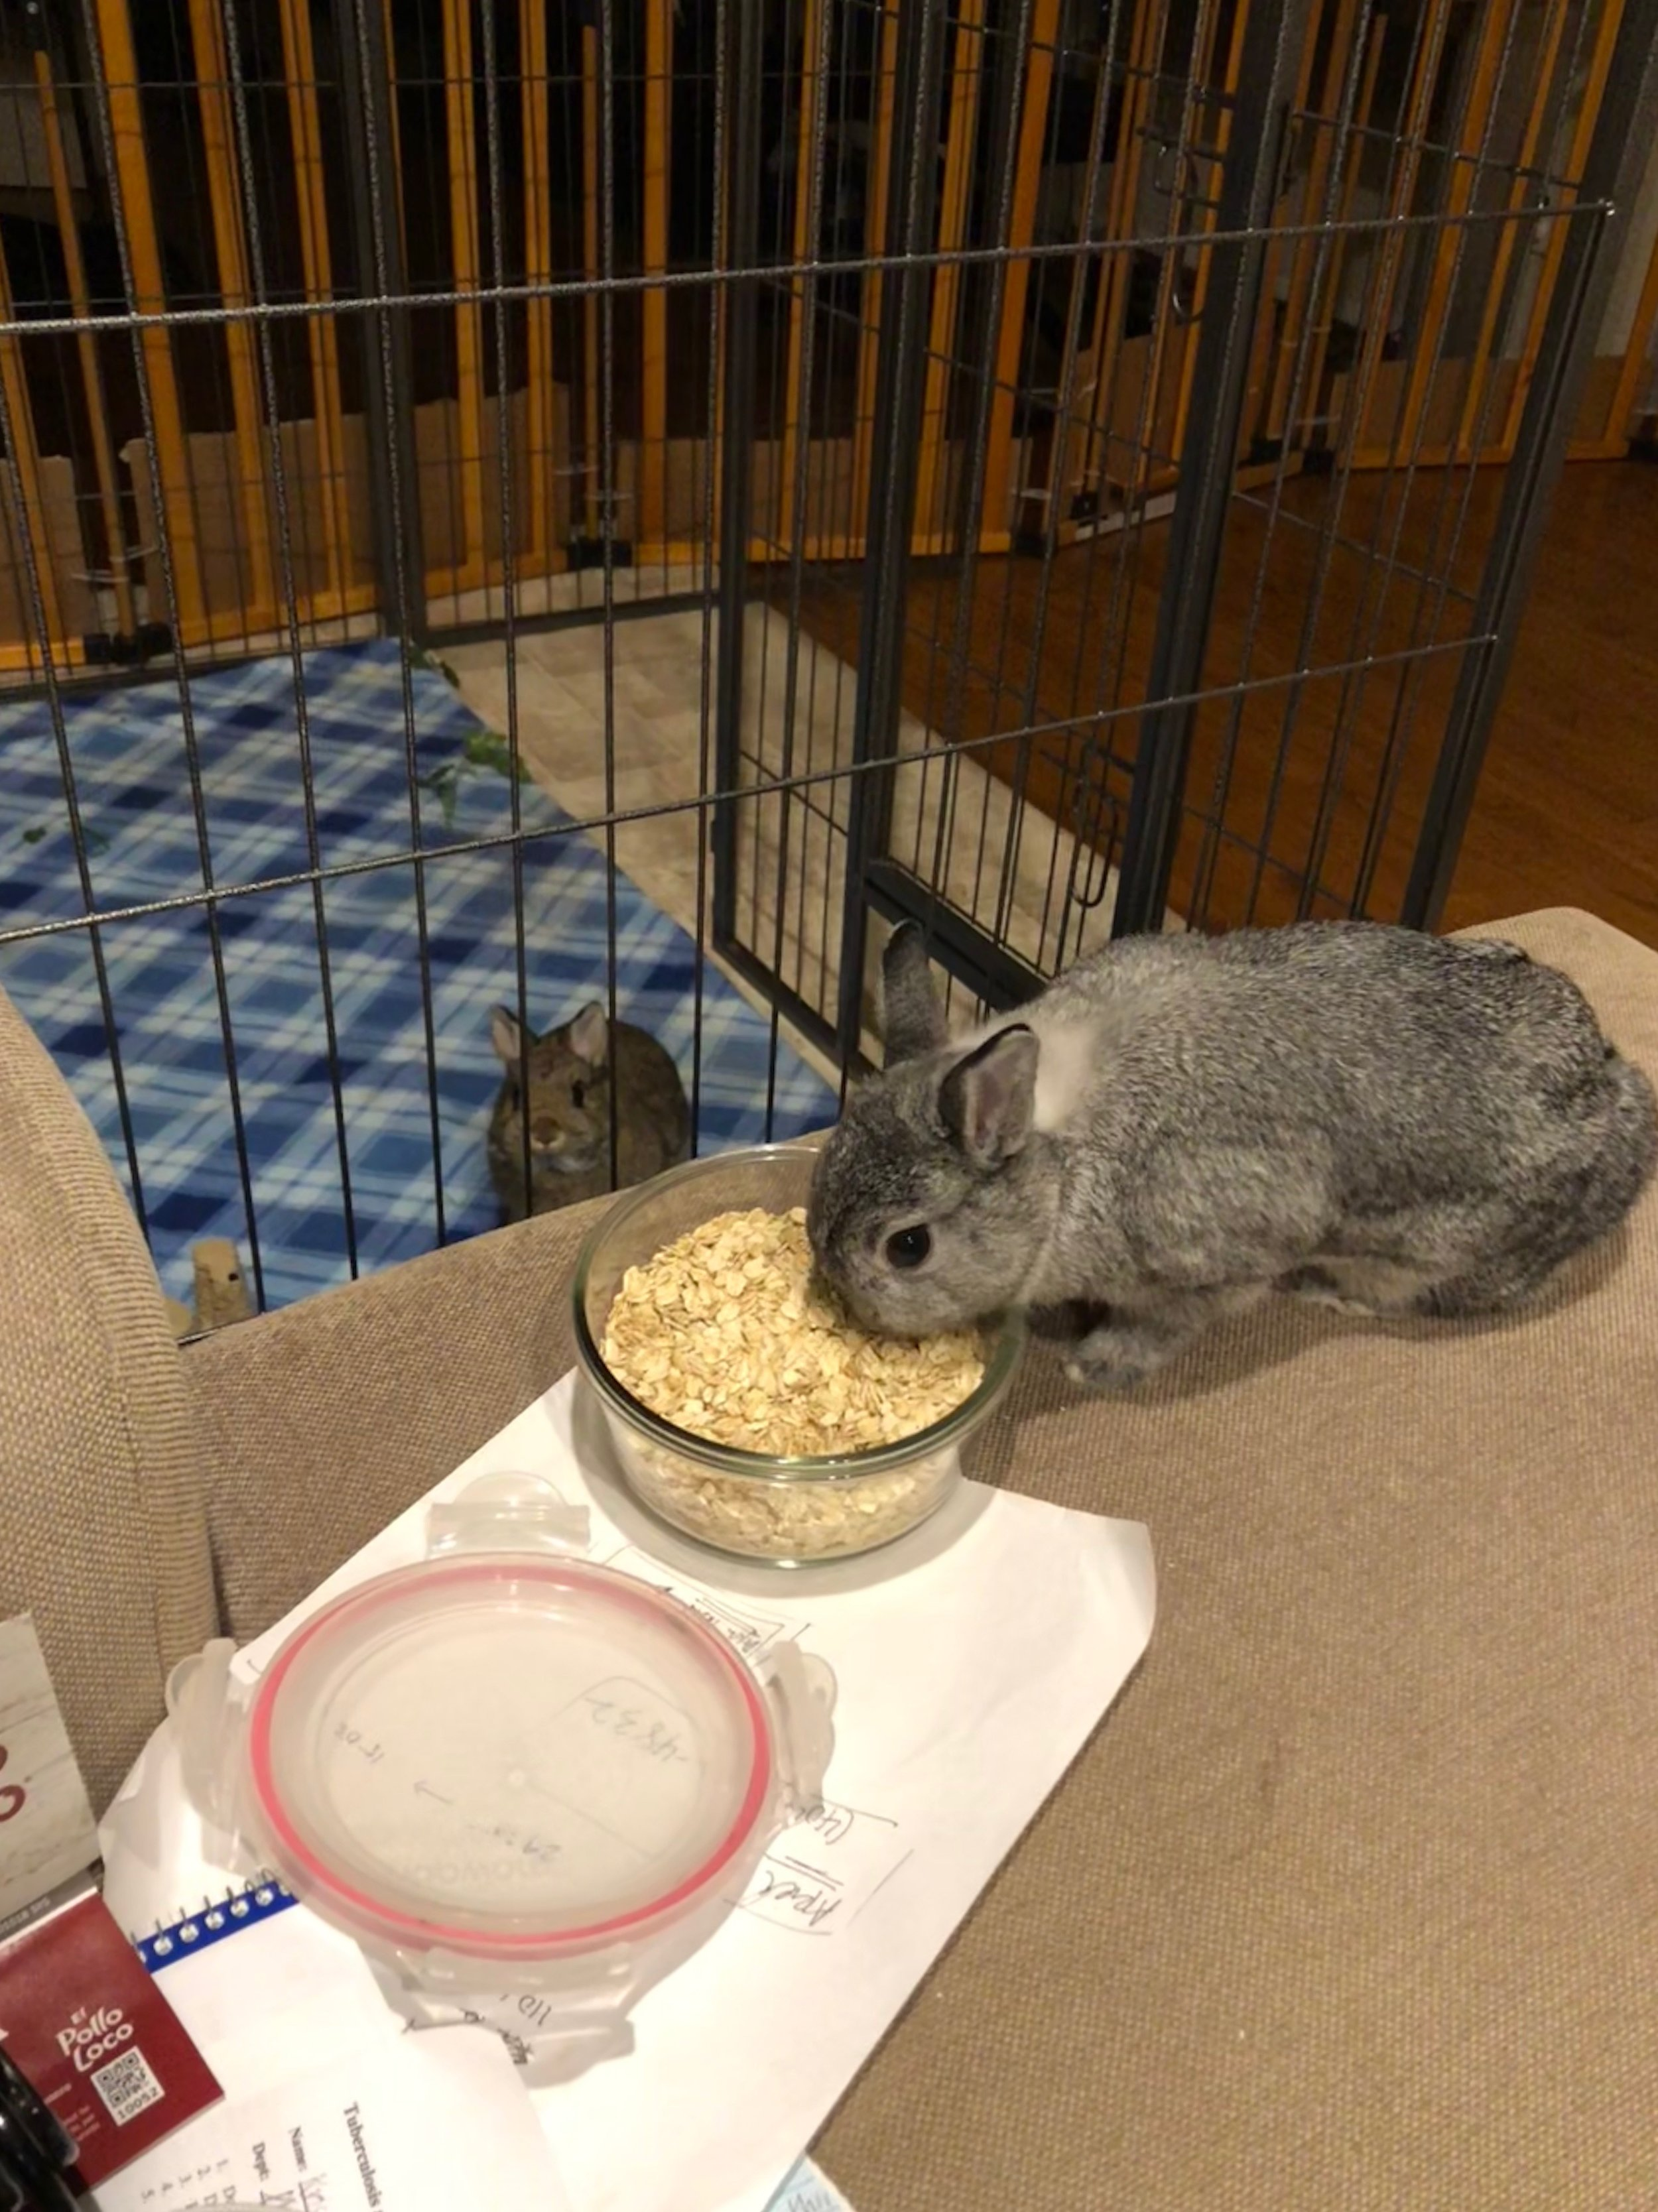 Cookie looking and wanting oats while Gizmo eats.jpeg